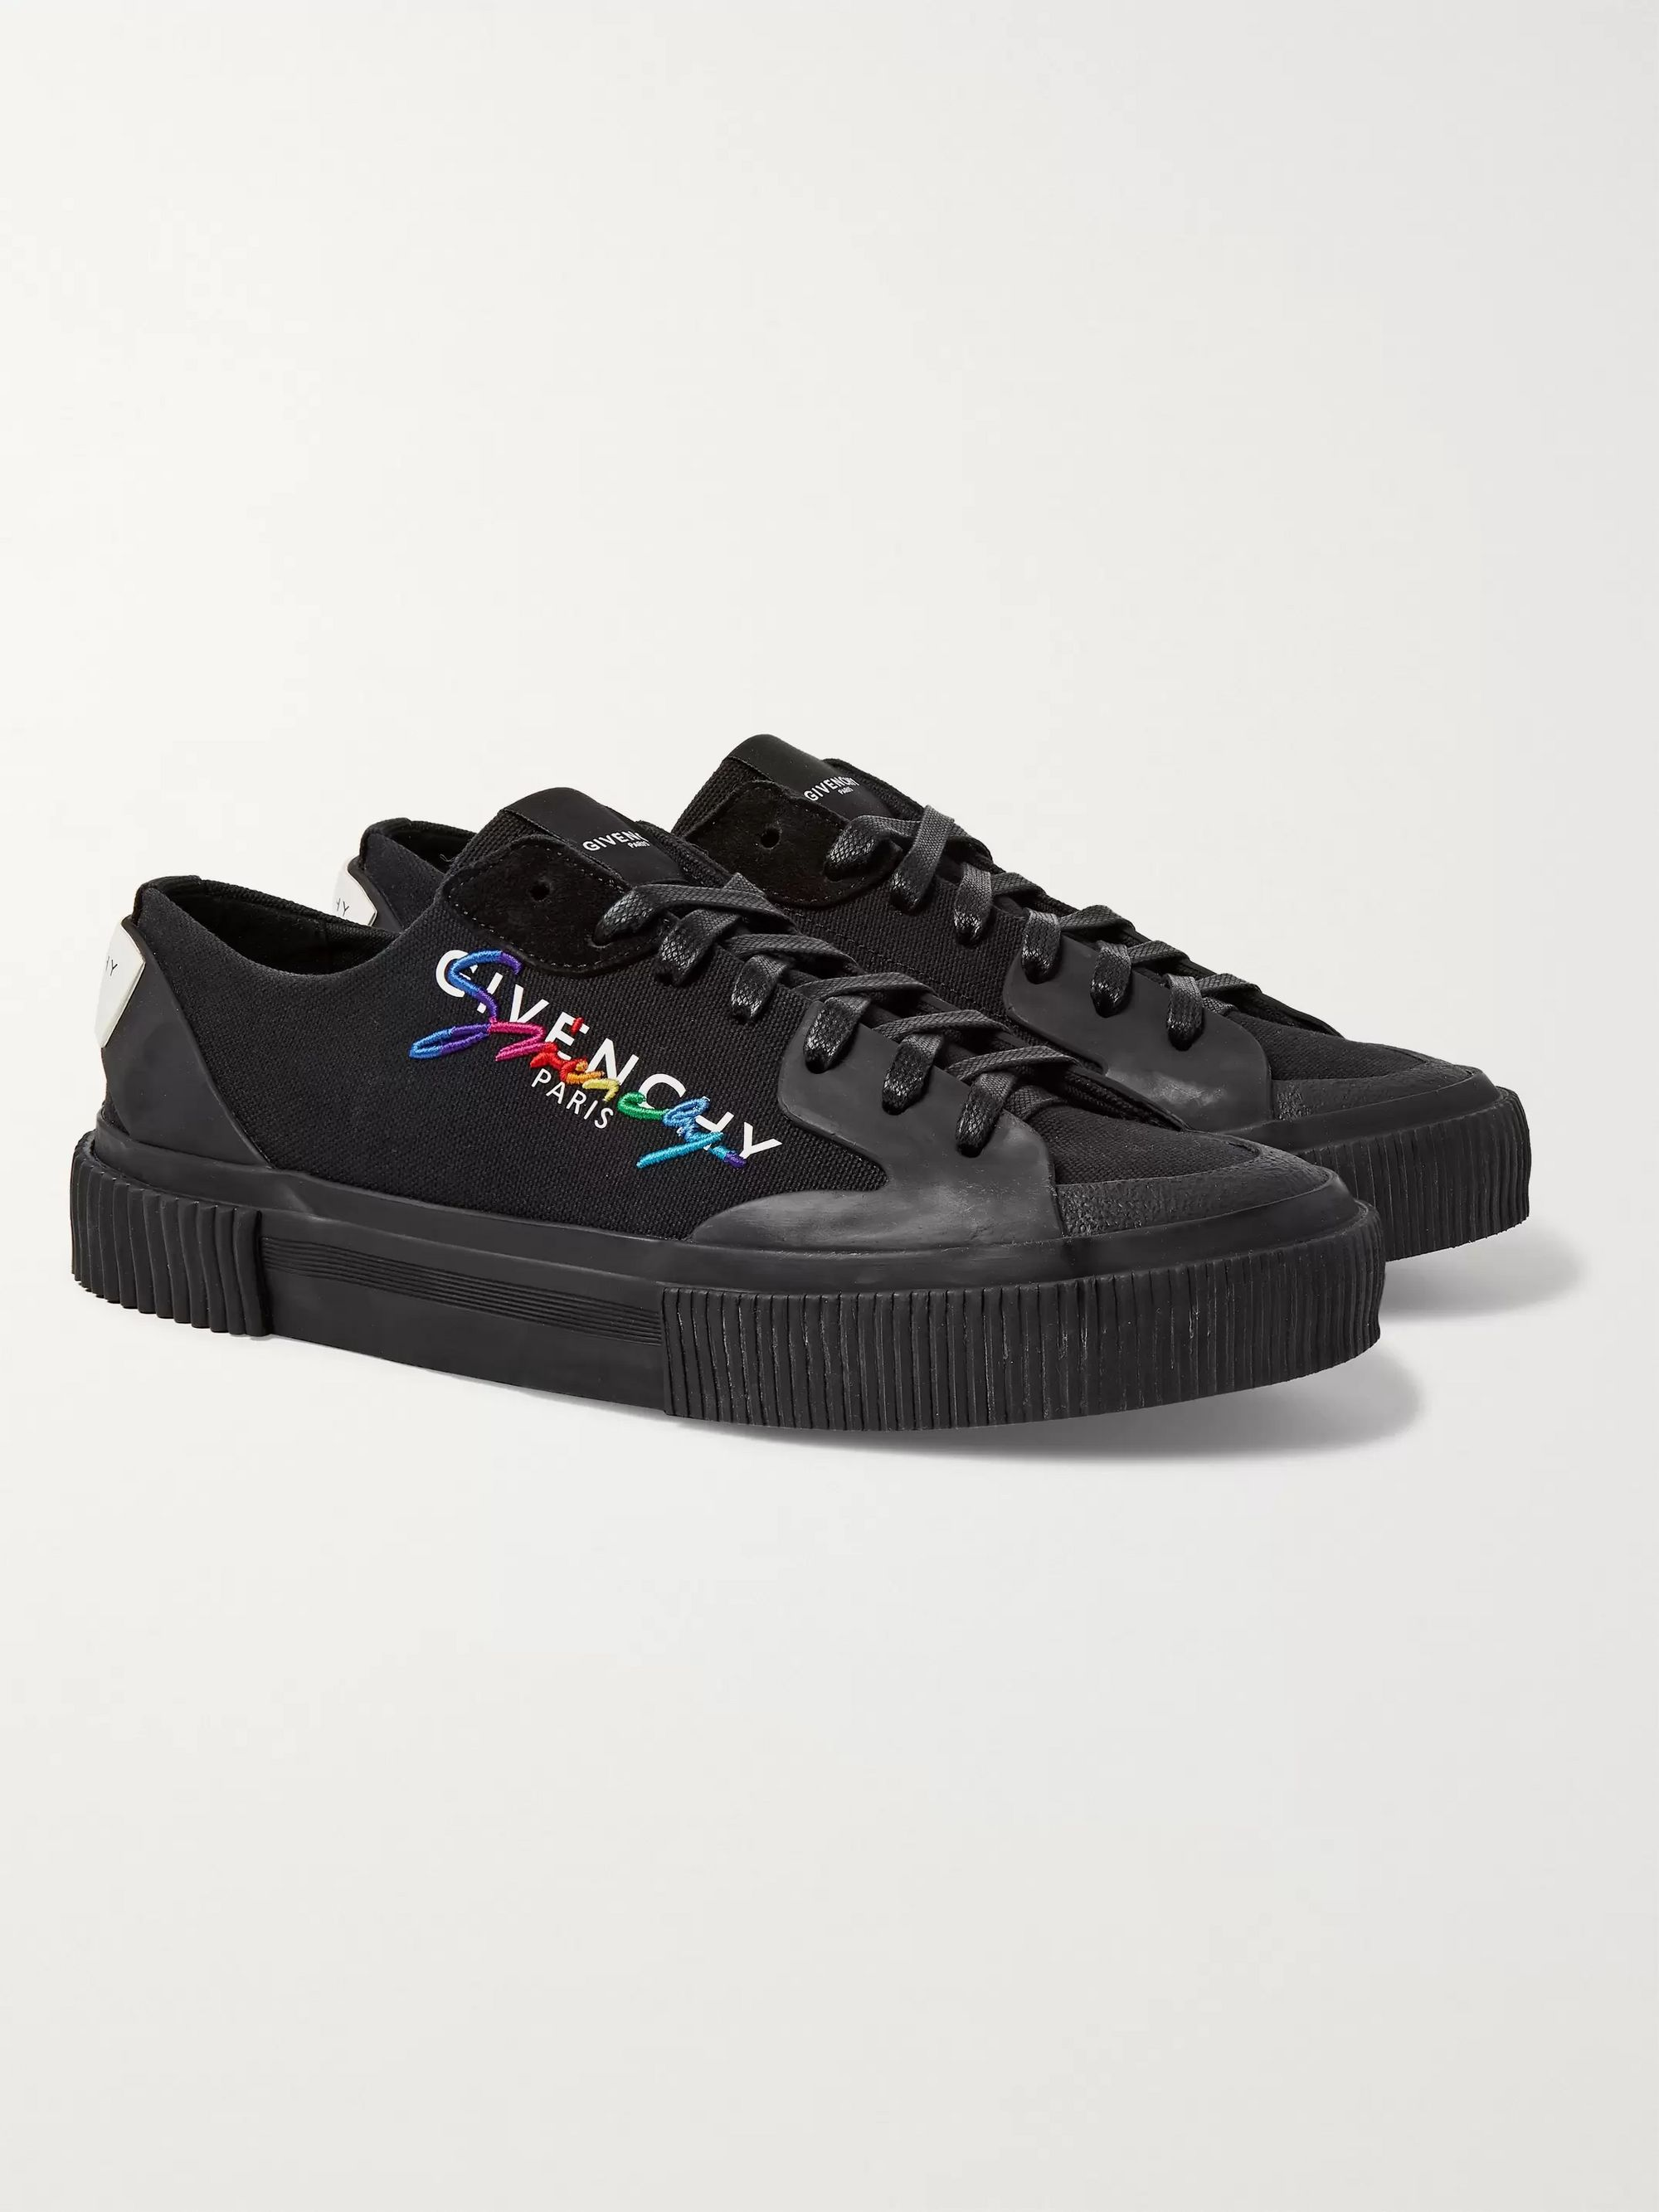 Givenchy Embroidered Logo-Print Rubber and Suede-Trimmed Canvas Sneakers